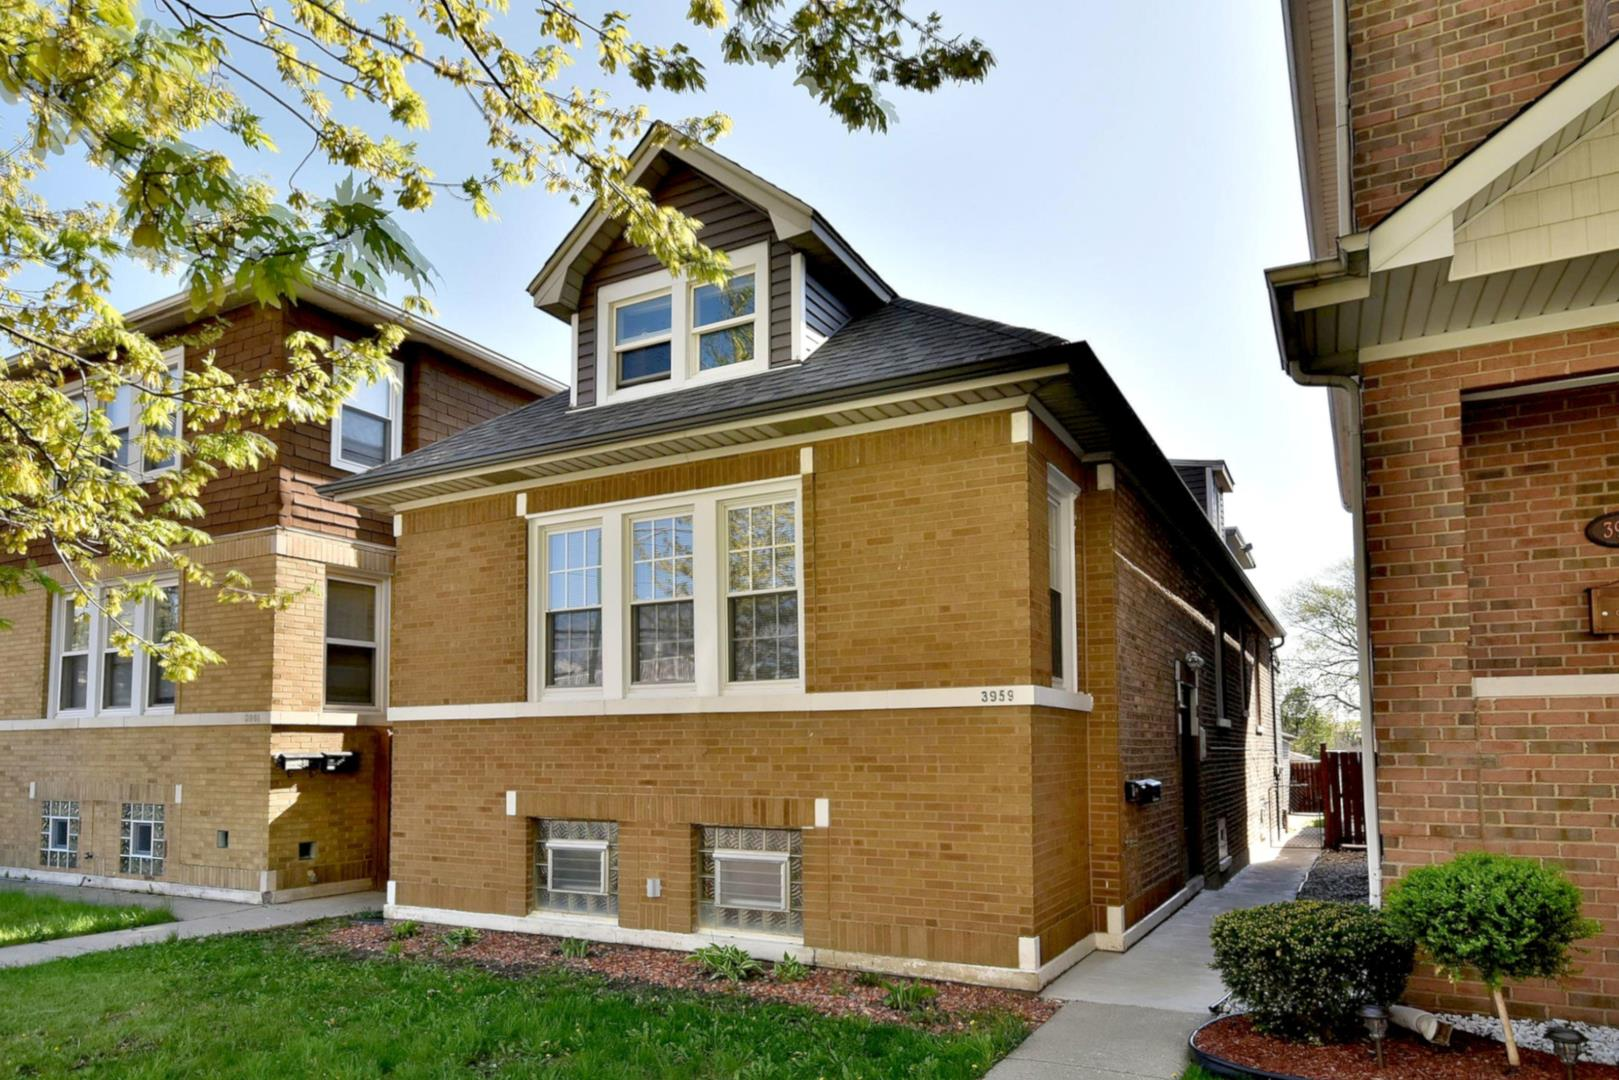 3959 N NATCHEZ Avenue, Chicago, IL 60634 - #: 11006960